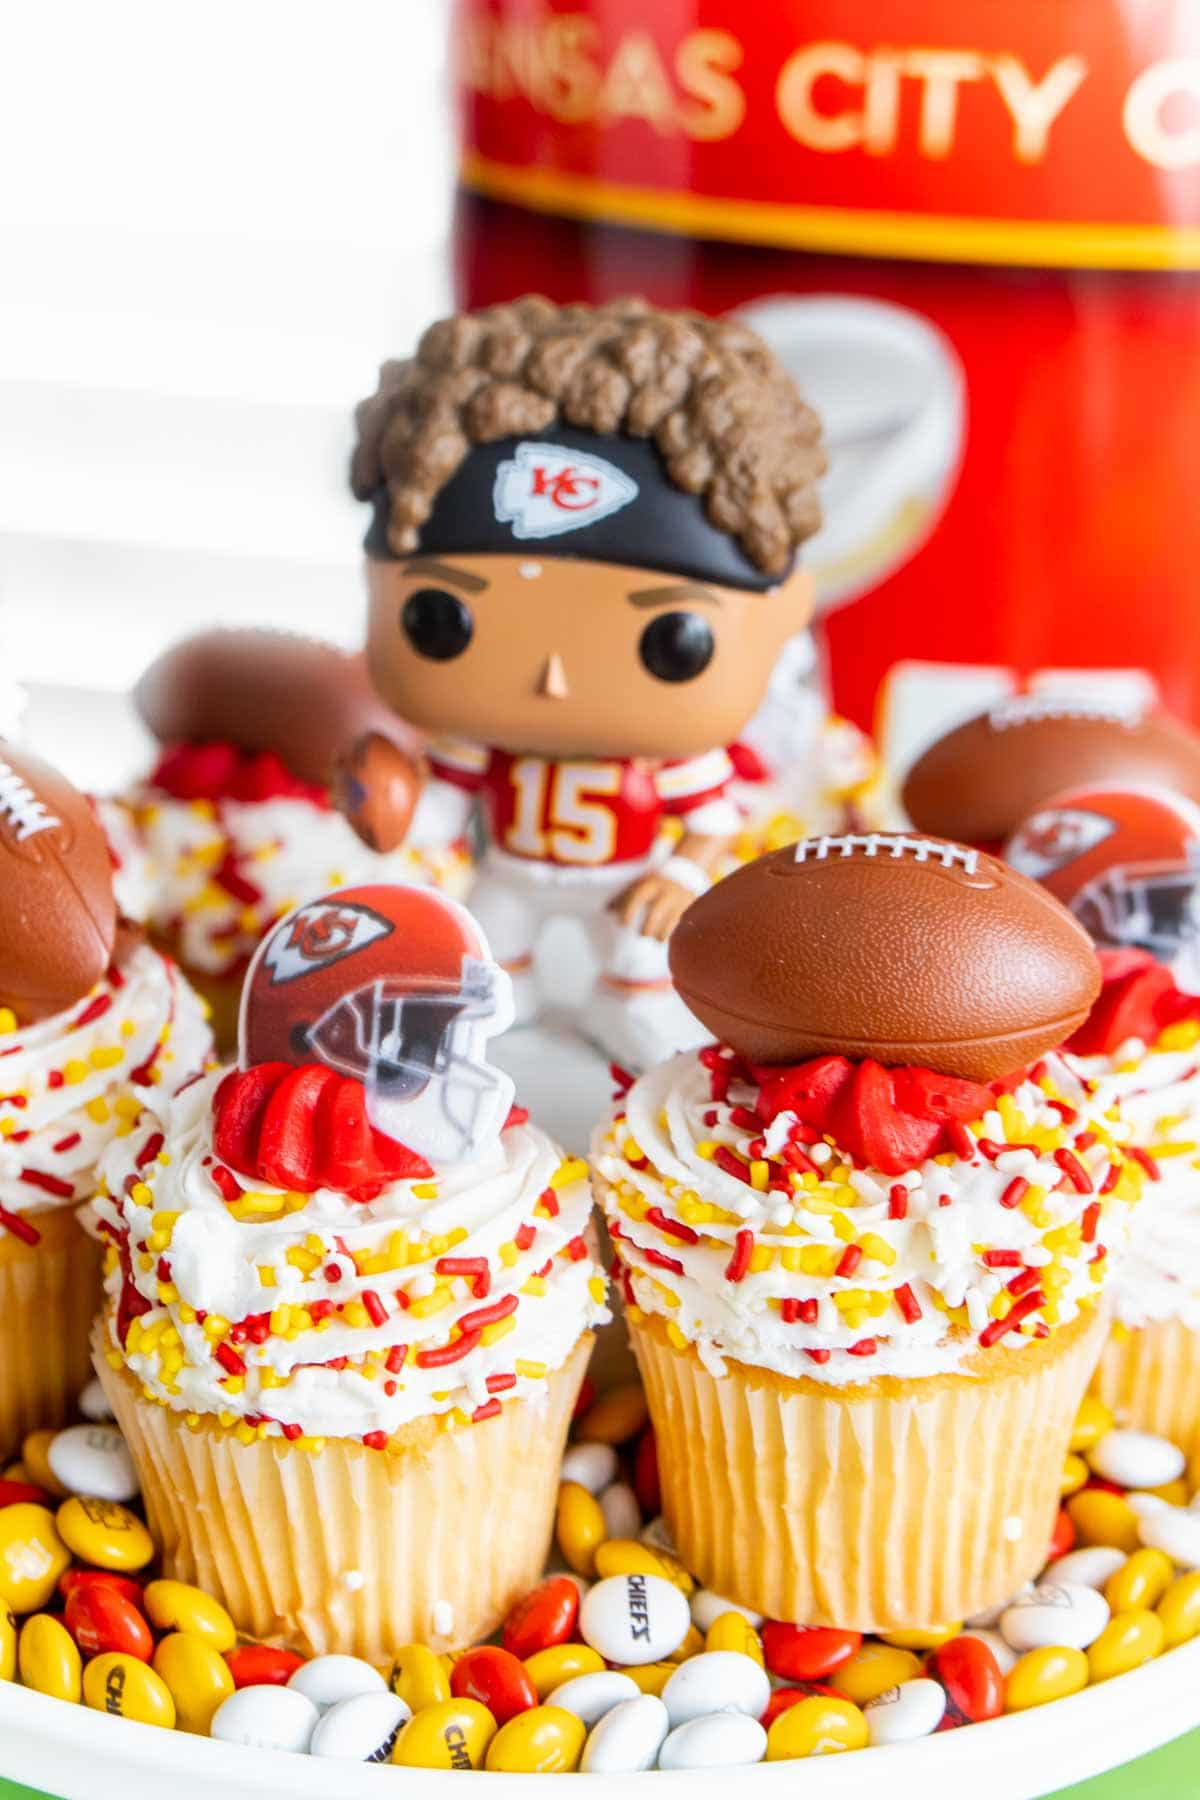 Chiefs cupcakes with Mahomes in the center